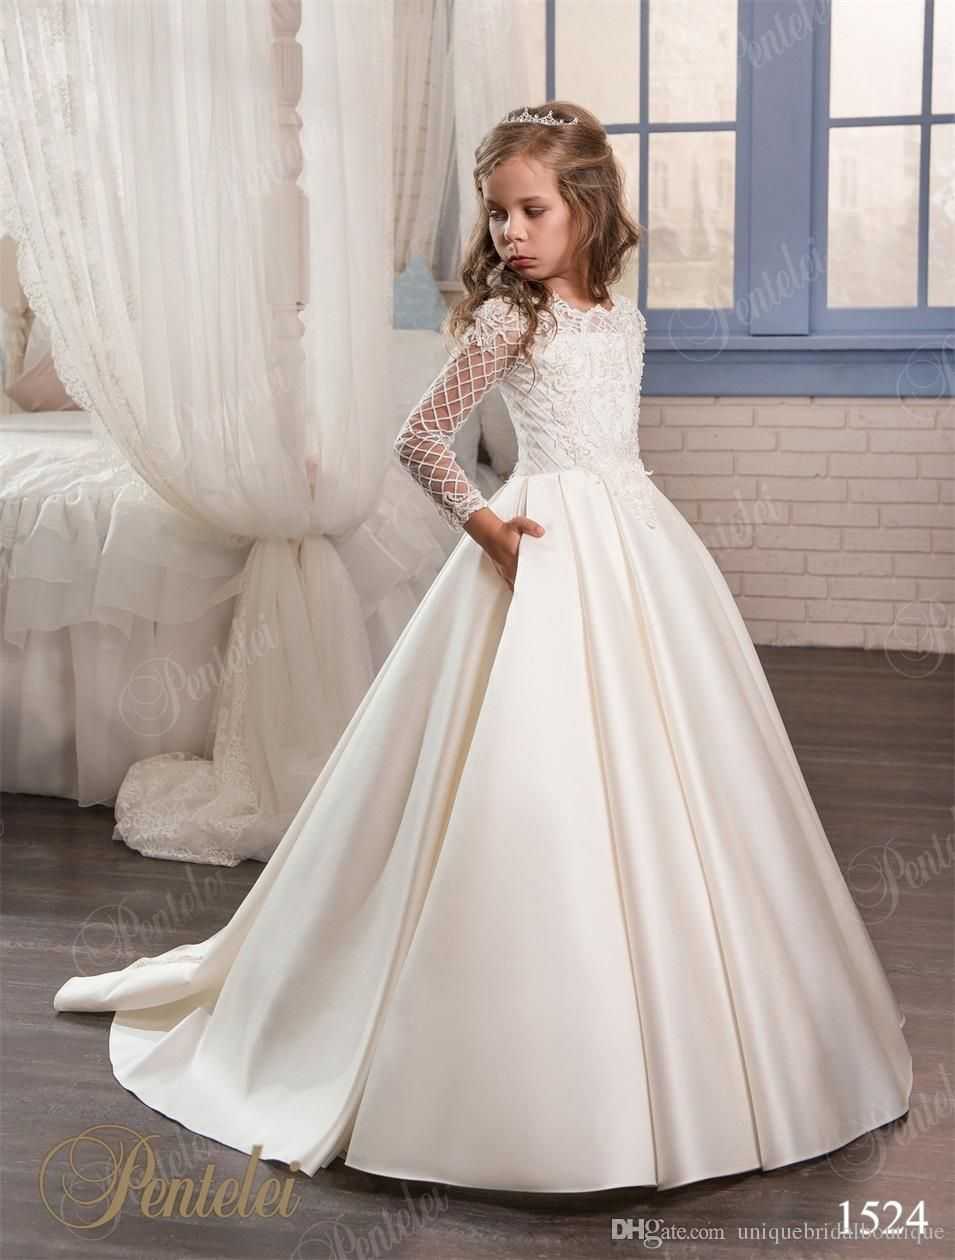 Wedding dresses for little girls 2017 pentelei cheap with for Wedding dresses for young girls